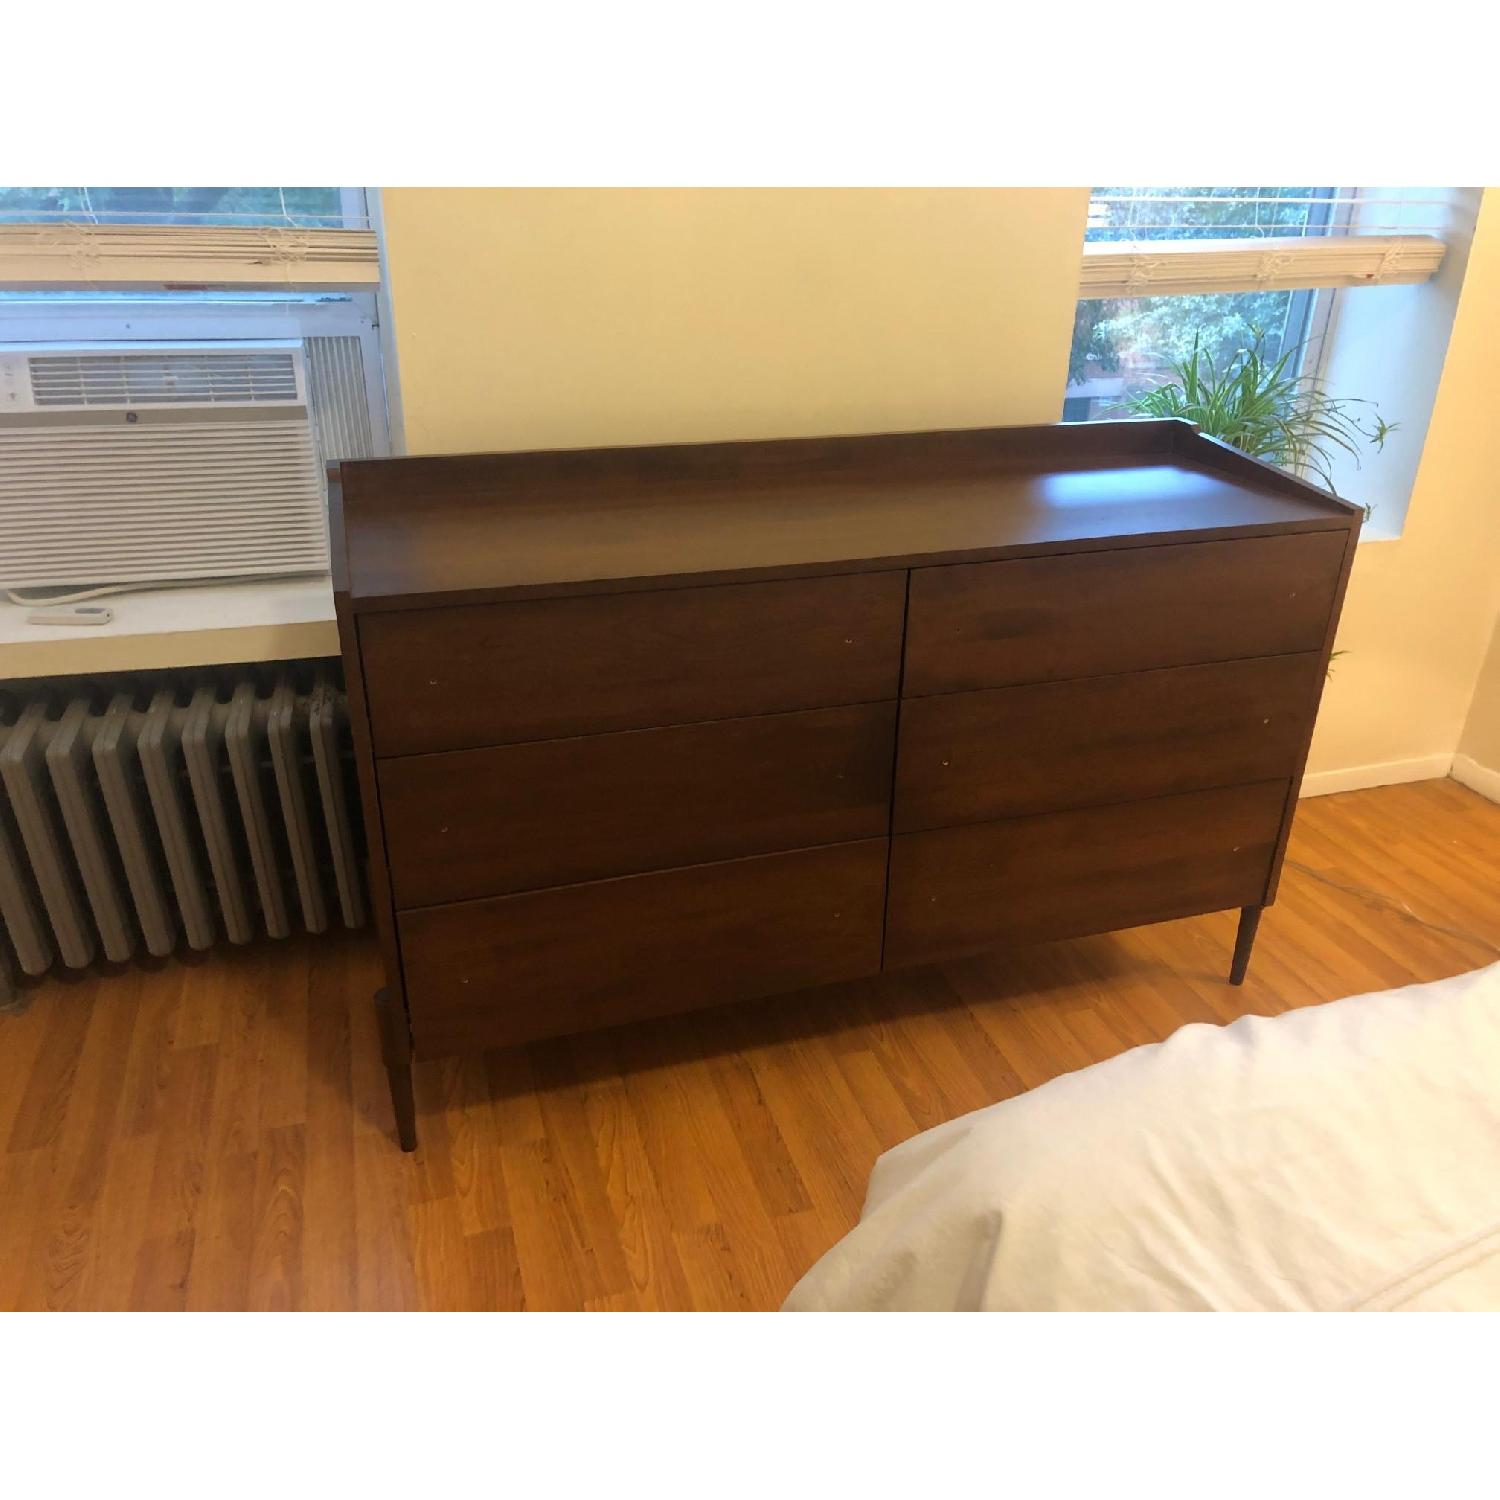 Rejuvenation Morrow 6 Drawer Dresser - image-1